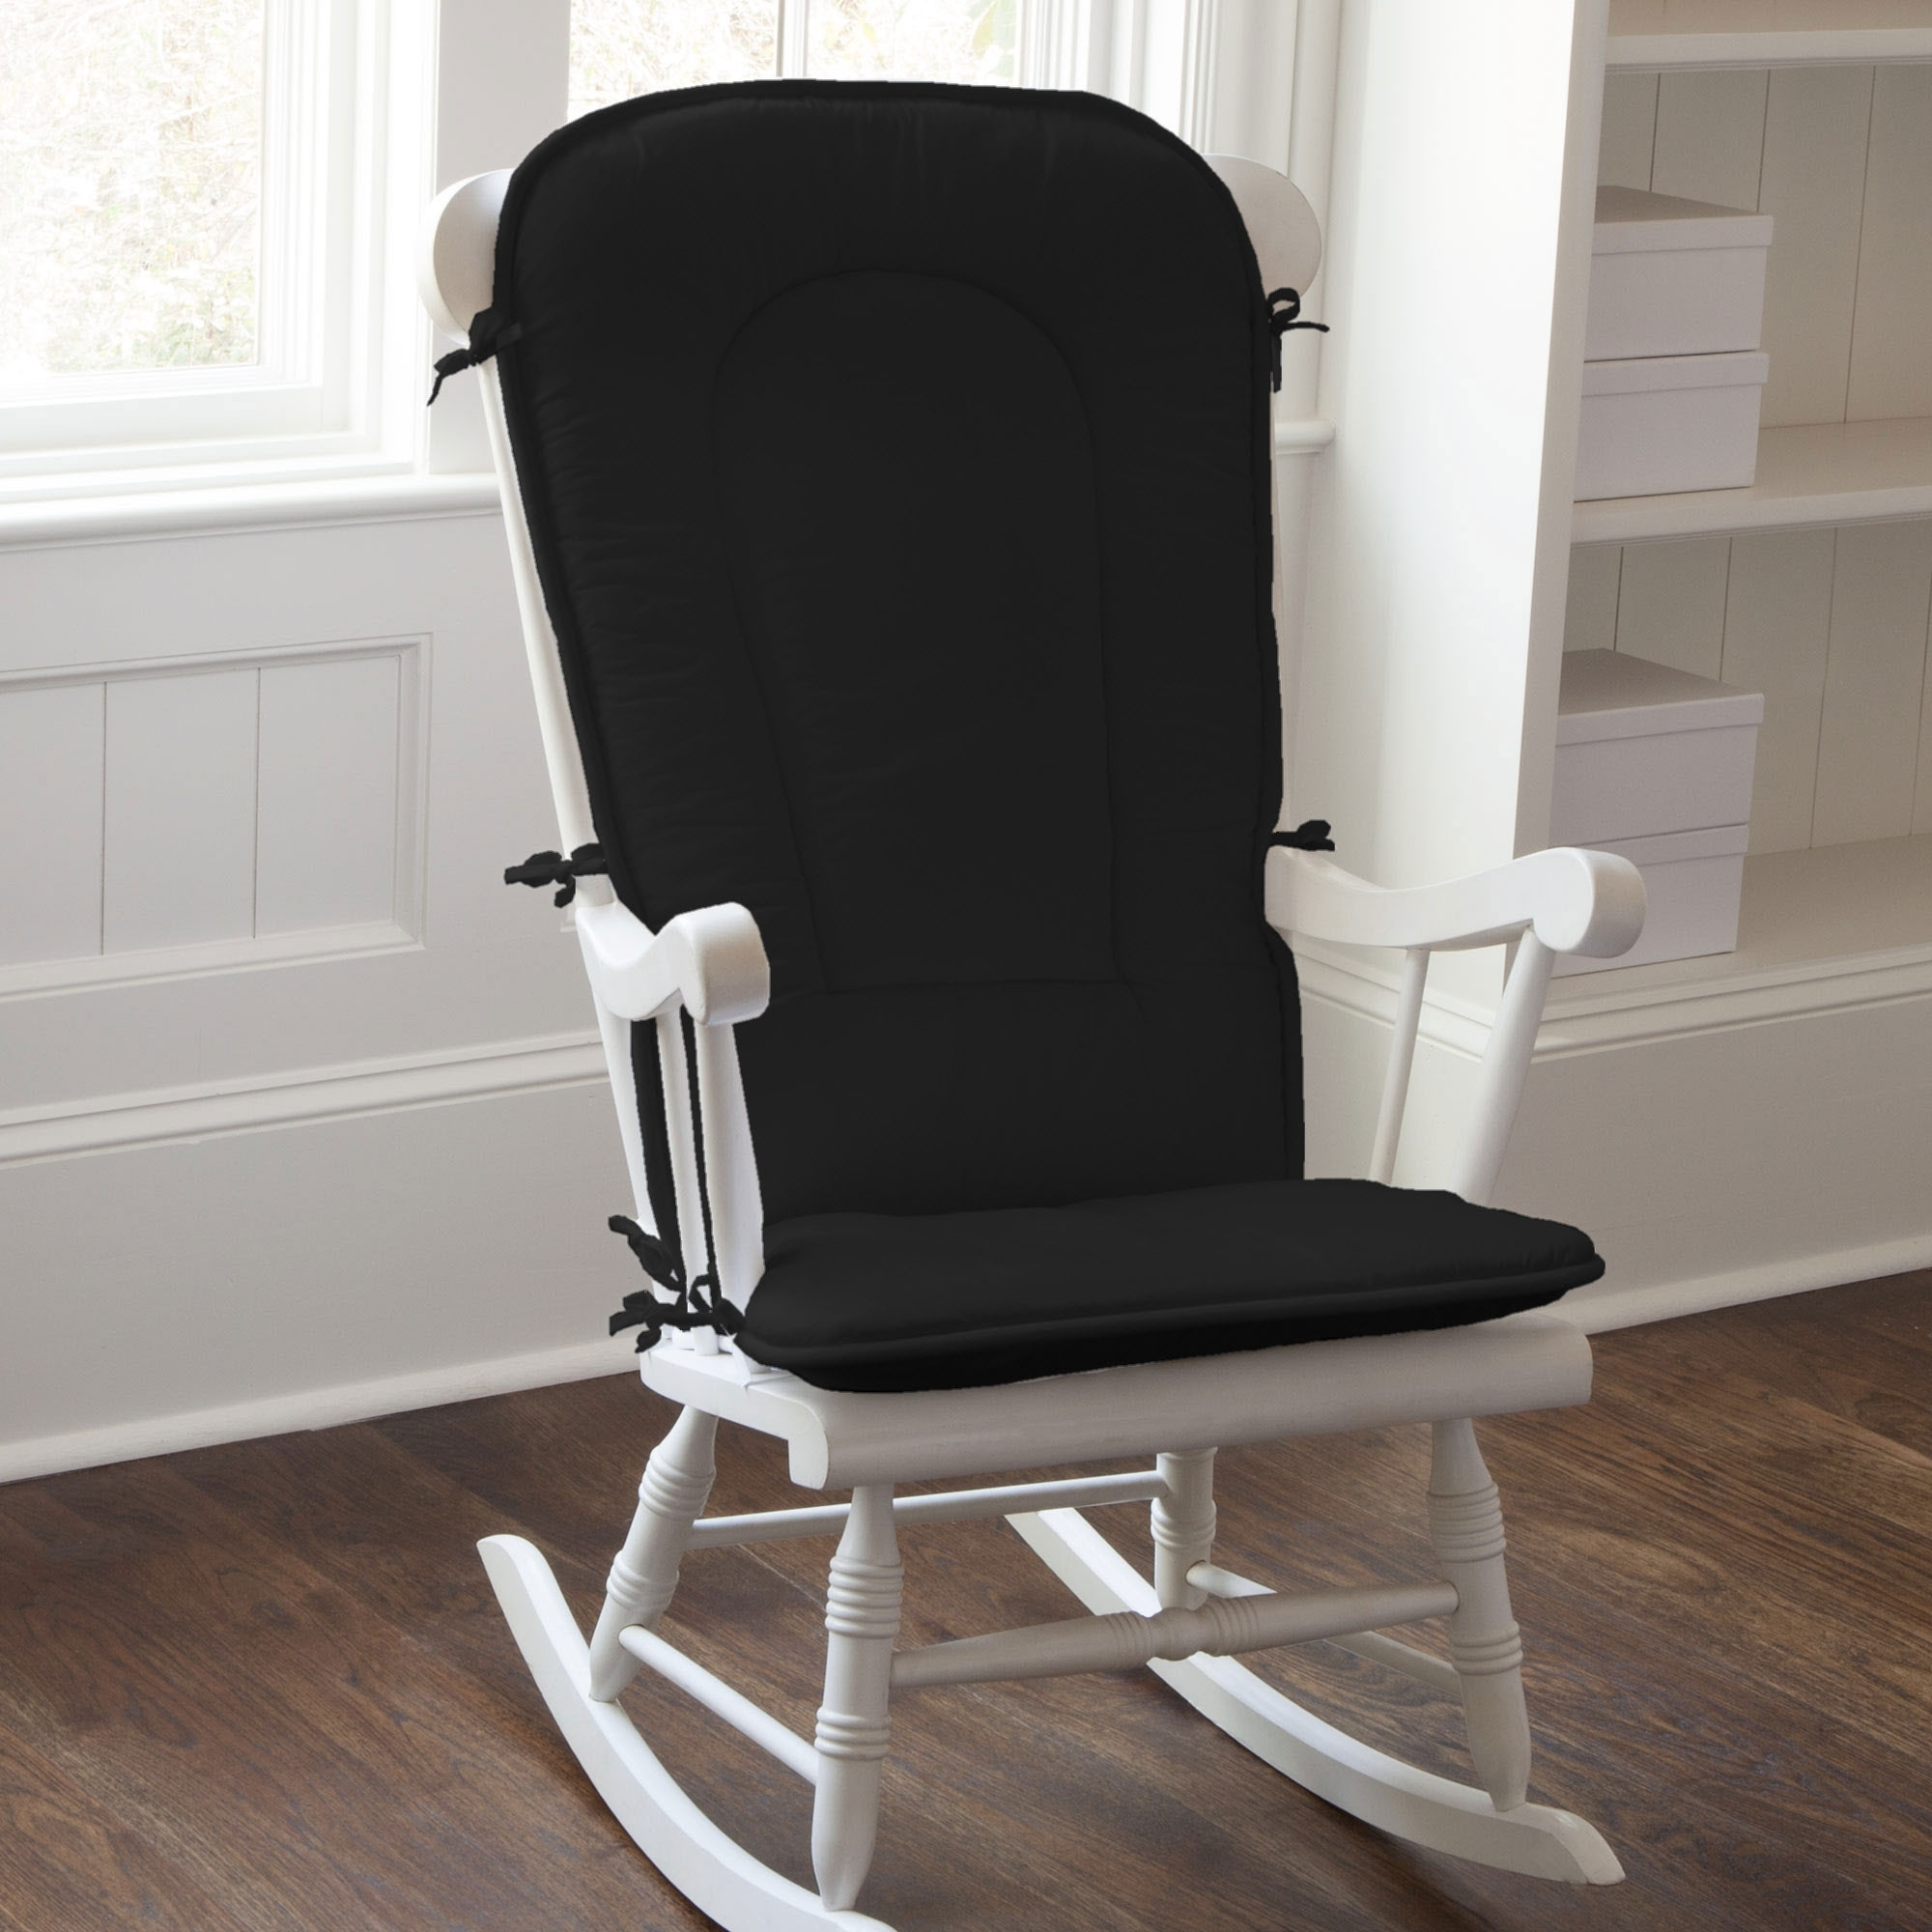 Living Room Furniture : Black Rocking Chair For Nursery Wooden With Regard To Most Recent Rocking Chairs With Cushions (View 5 of 15)